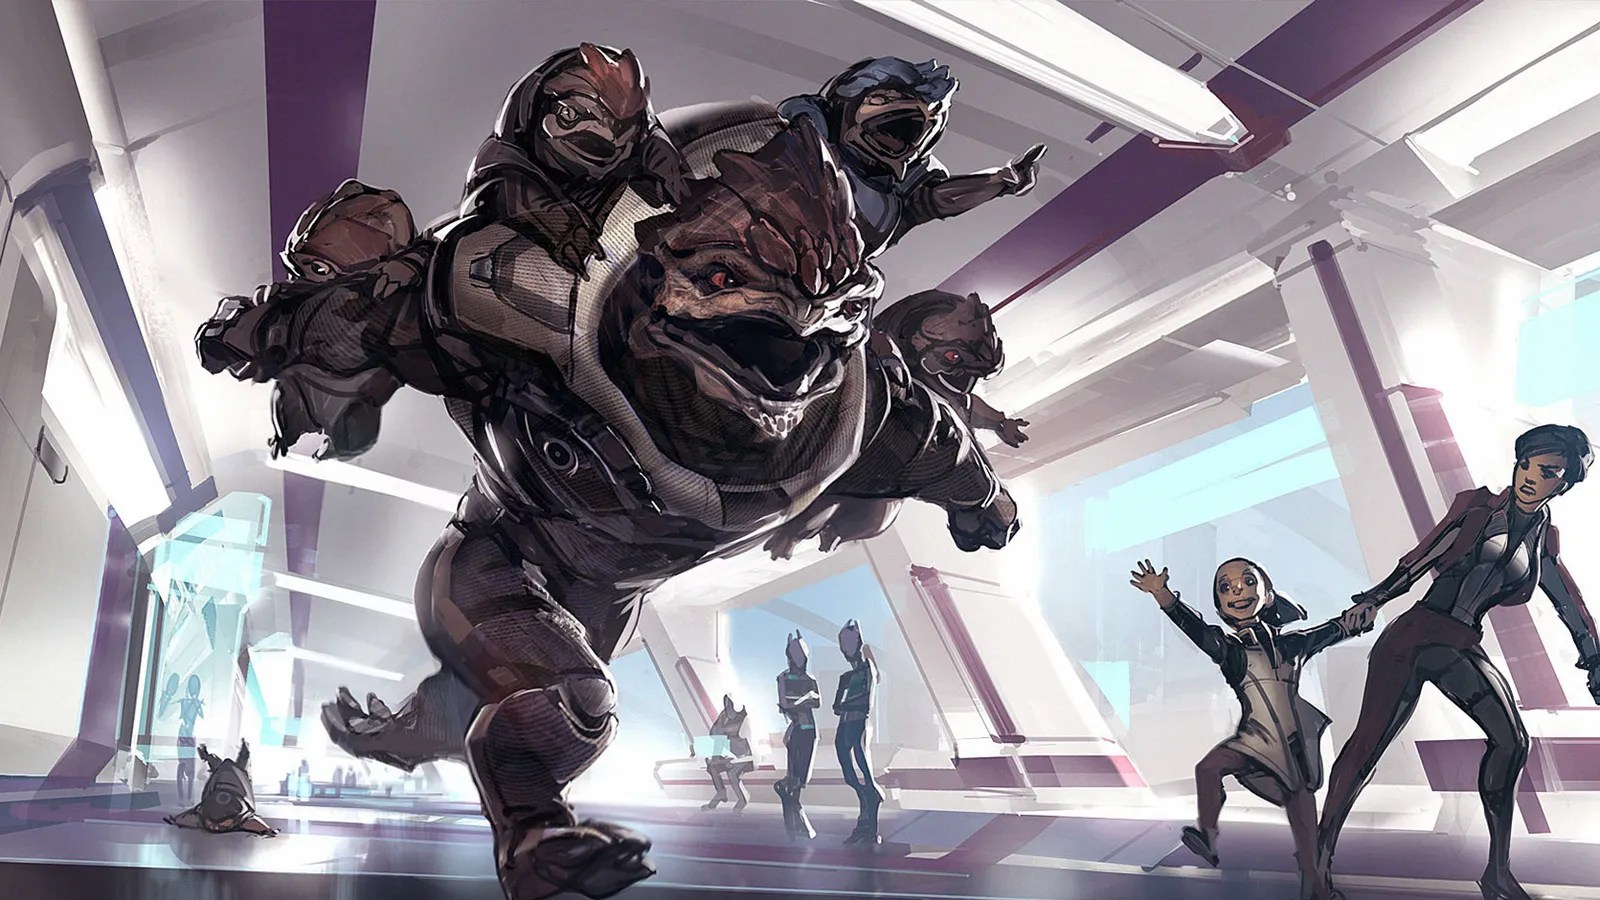 If The Mass Effect Games Had Kids